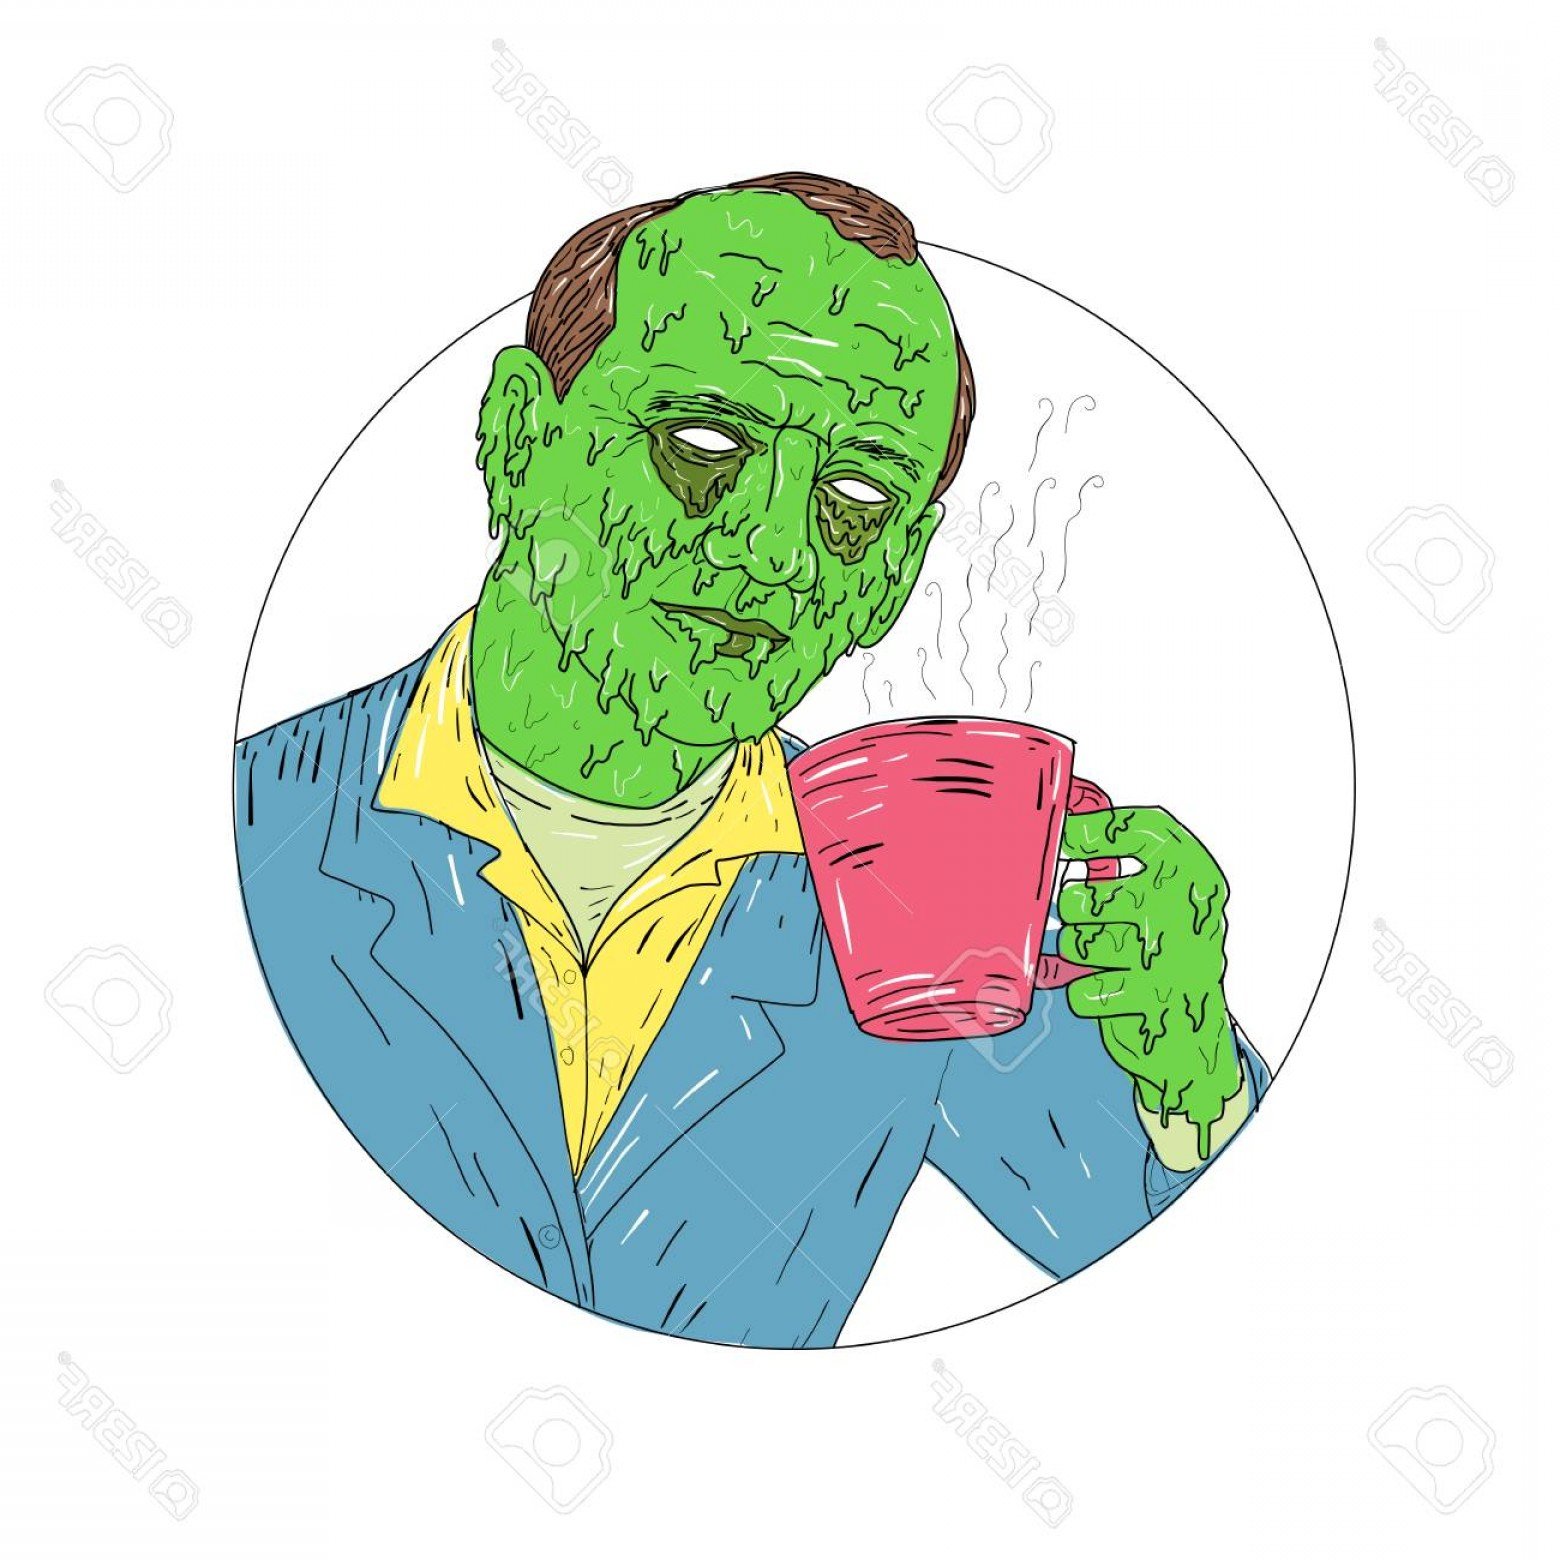 Grime Vector Pack: Photostock Vector Grime Art Style Illustration Of An Asian Dude Gentleman Drinking Coffee Set Inside Circle On Isolate